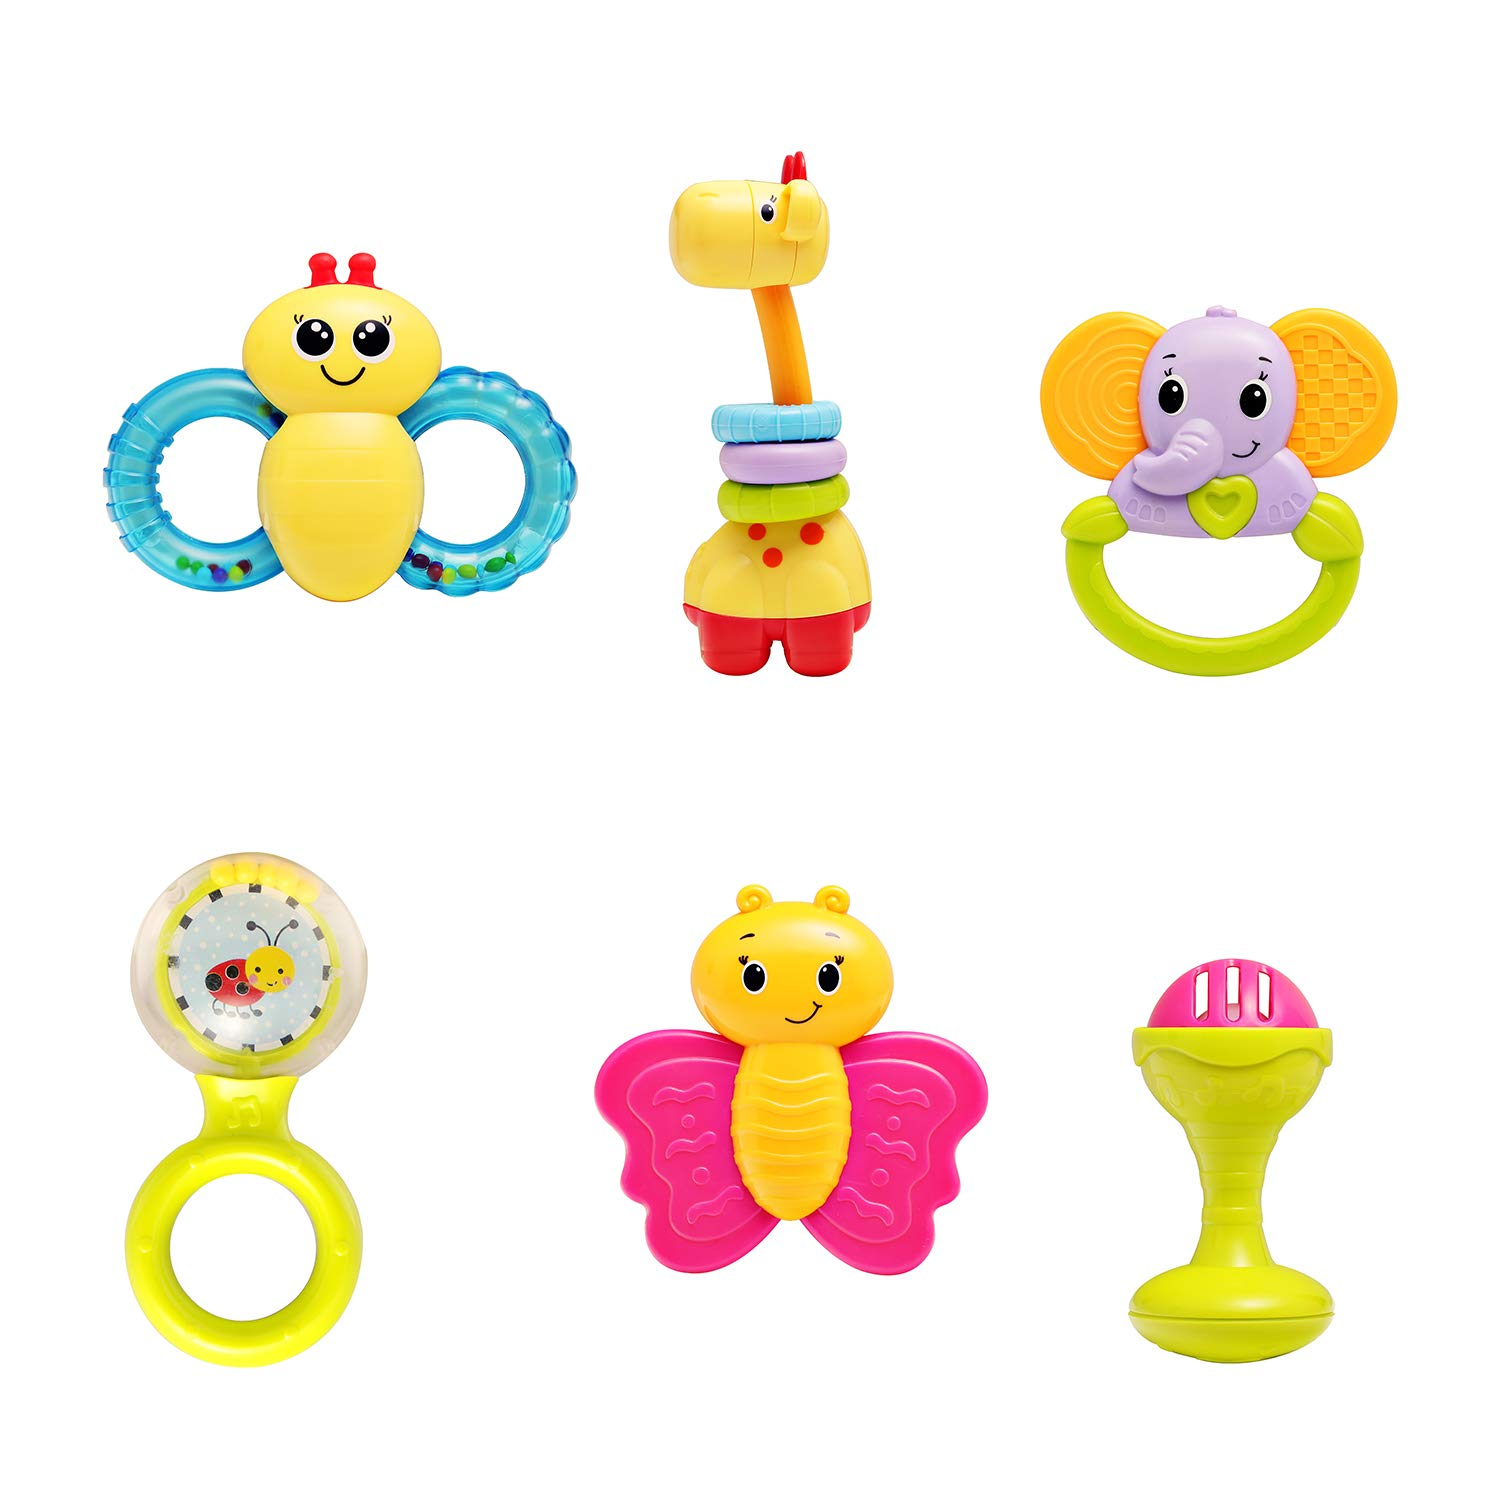 Details about infunbebe 6pcs Baby Rattles Teether Toy Grab Shaker Spin  Rattle Shaking Bell Set.